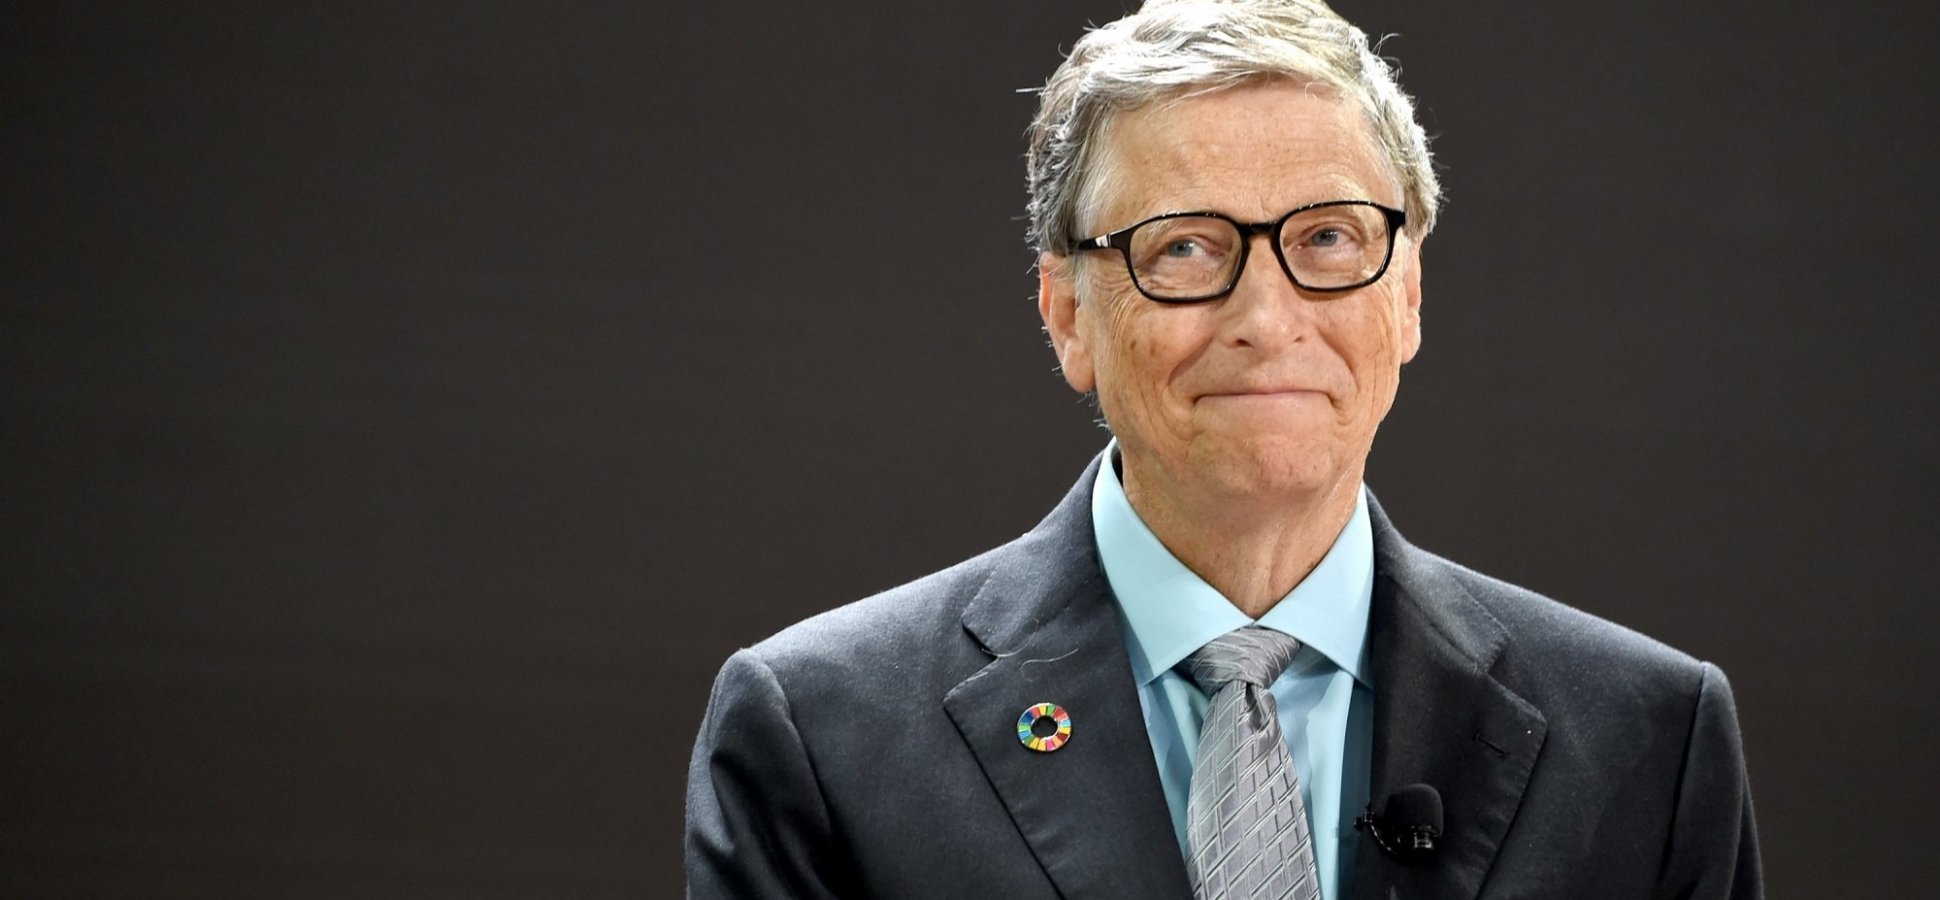 Bill Gates Just Named His Big Tech Mistake Ever. He Is Totally Wrong About It